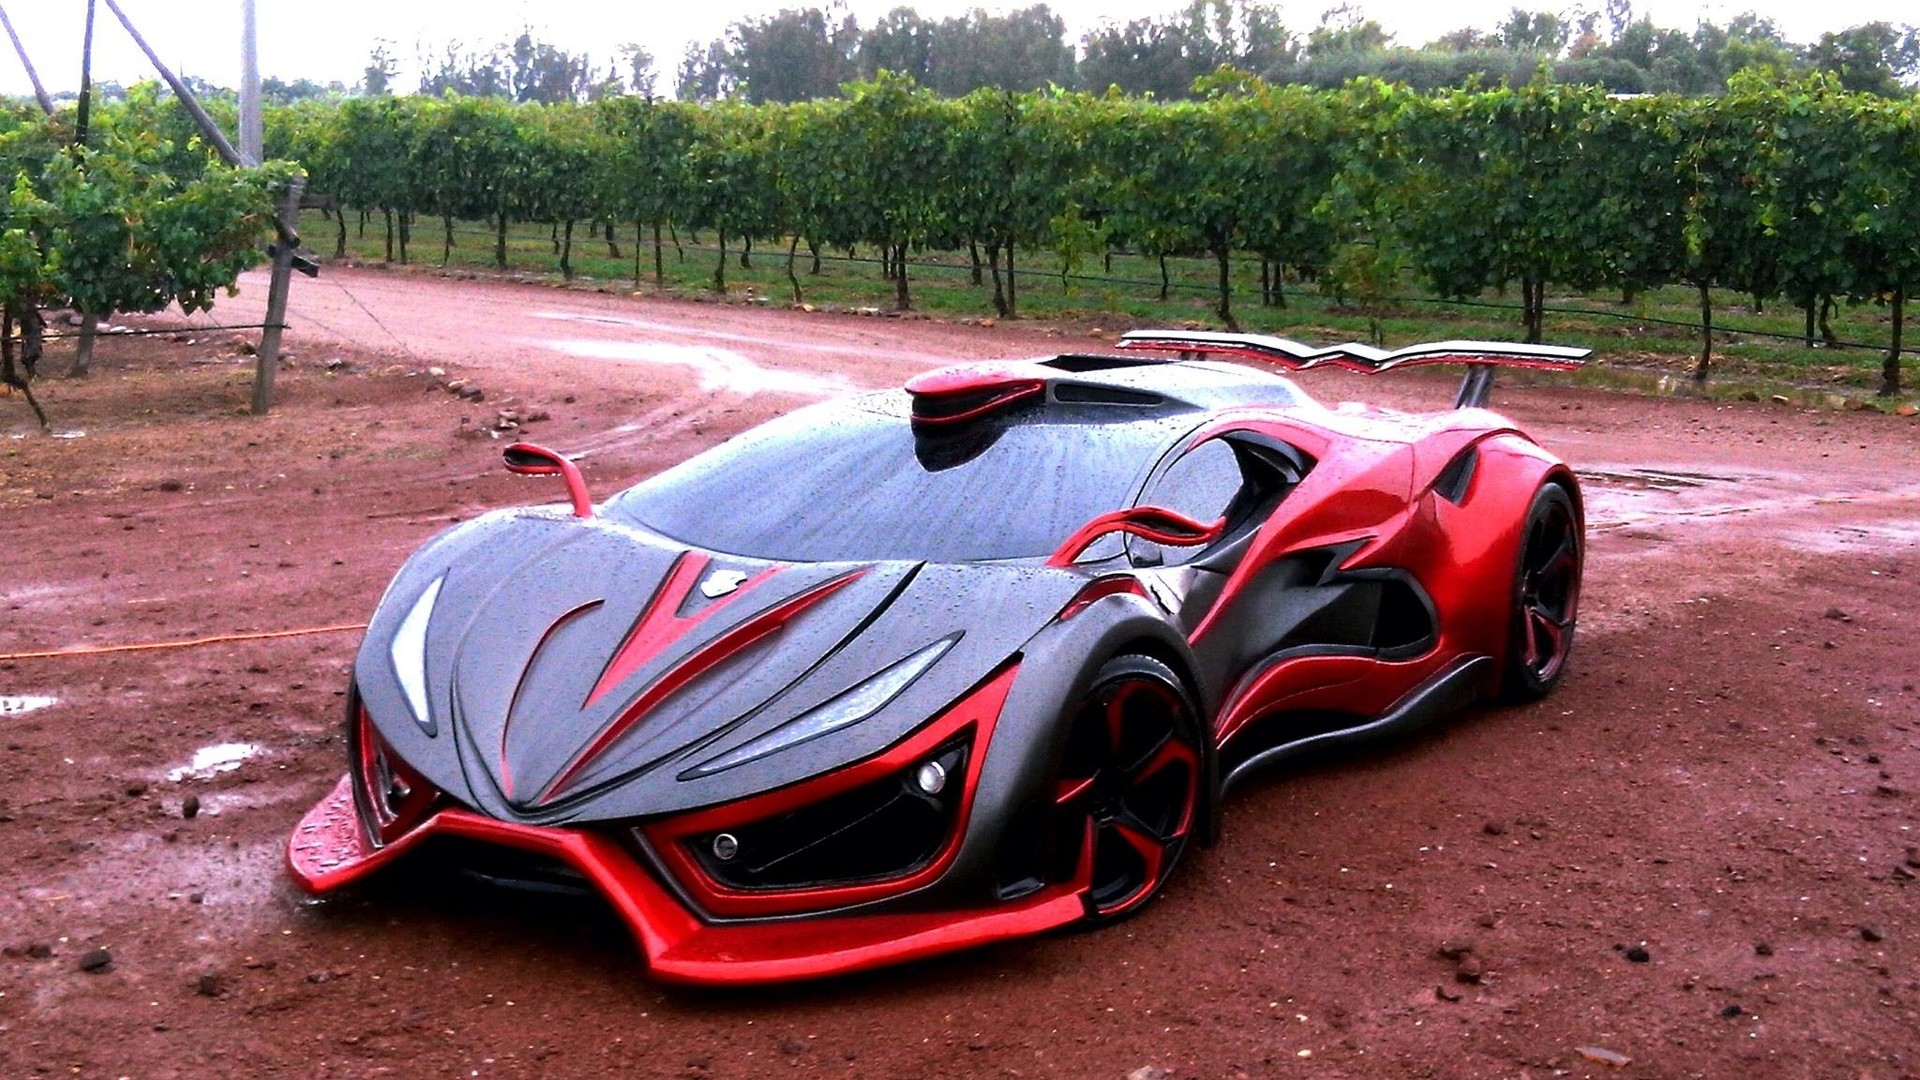 inferno 1 400 hp hypercar preparing for production with 2 1m price tag inferno 1 400 hp hypercar preparing for